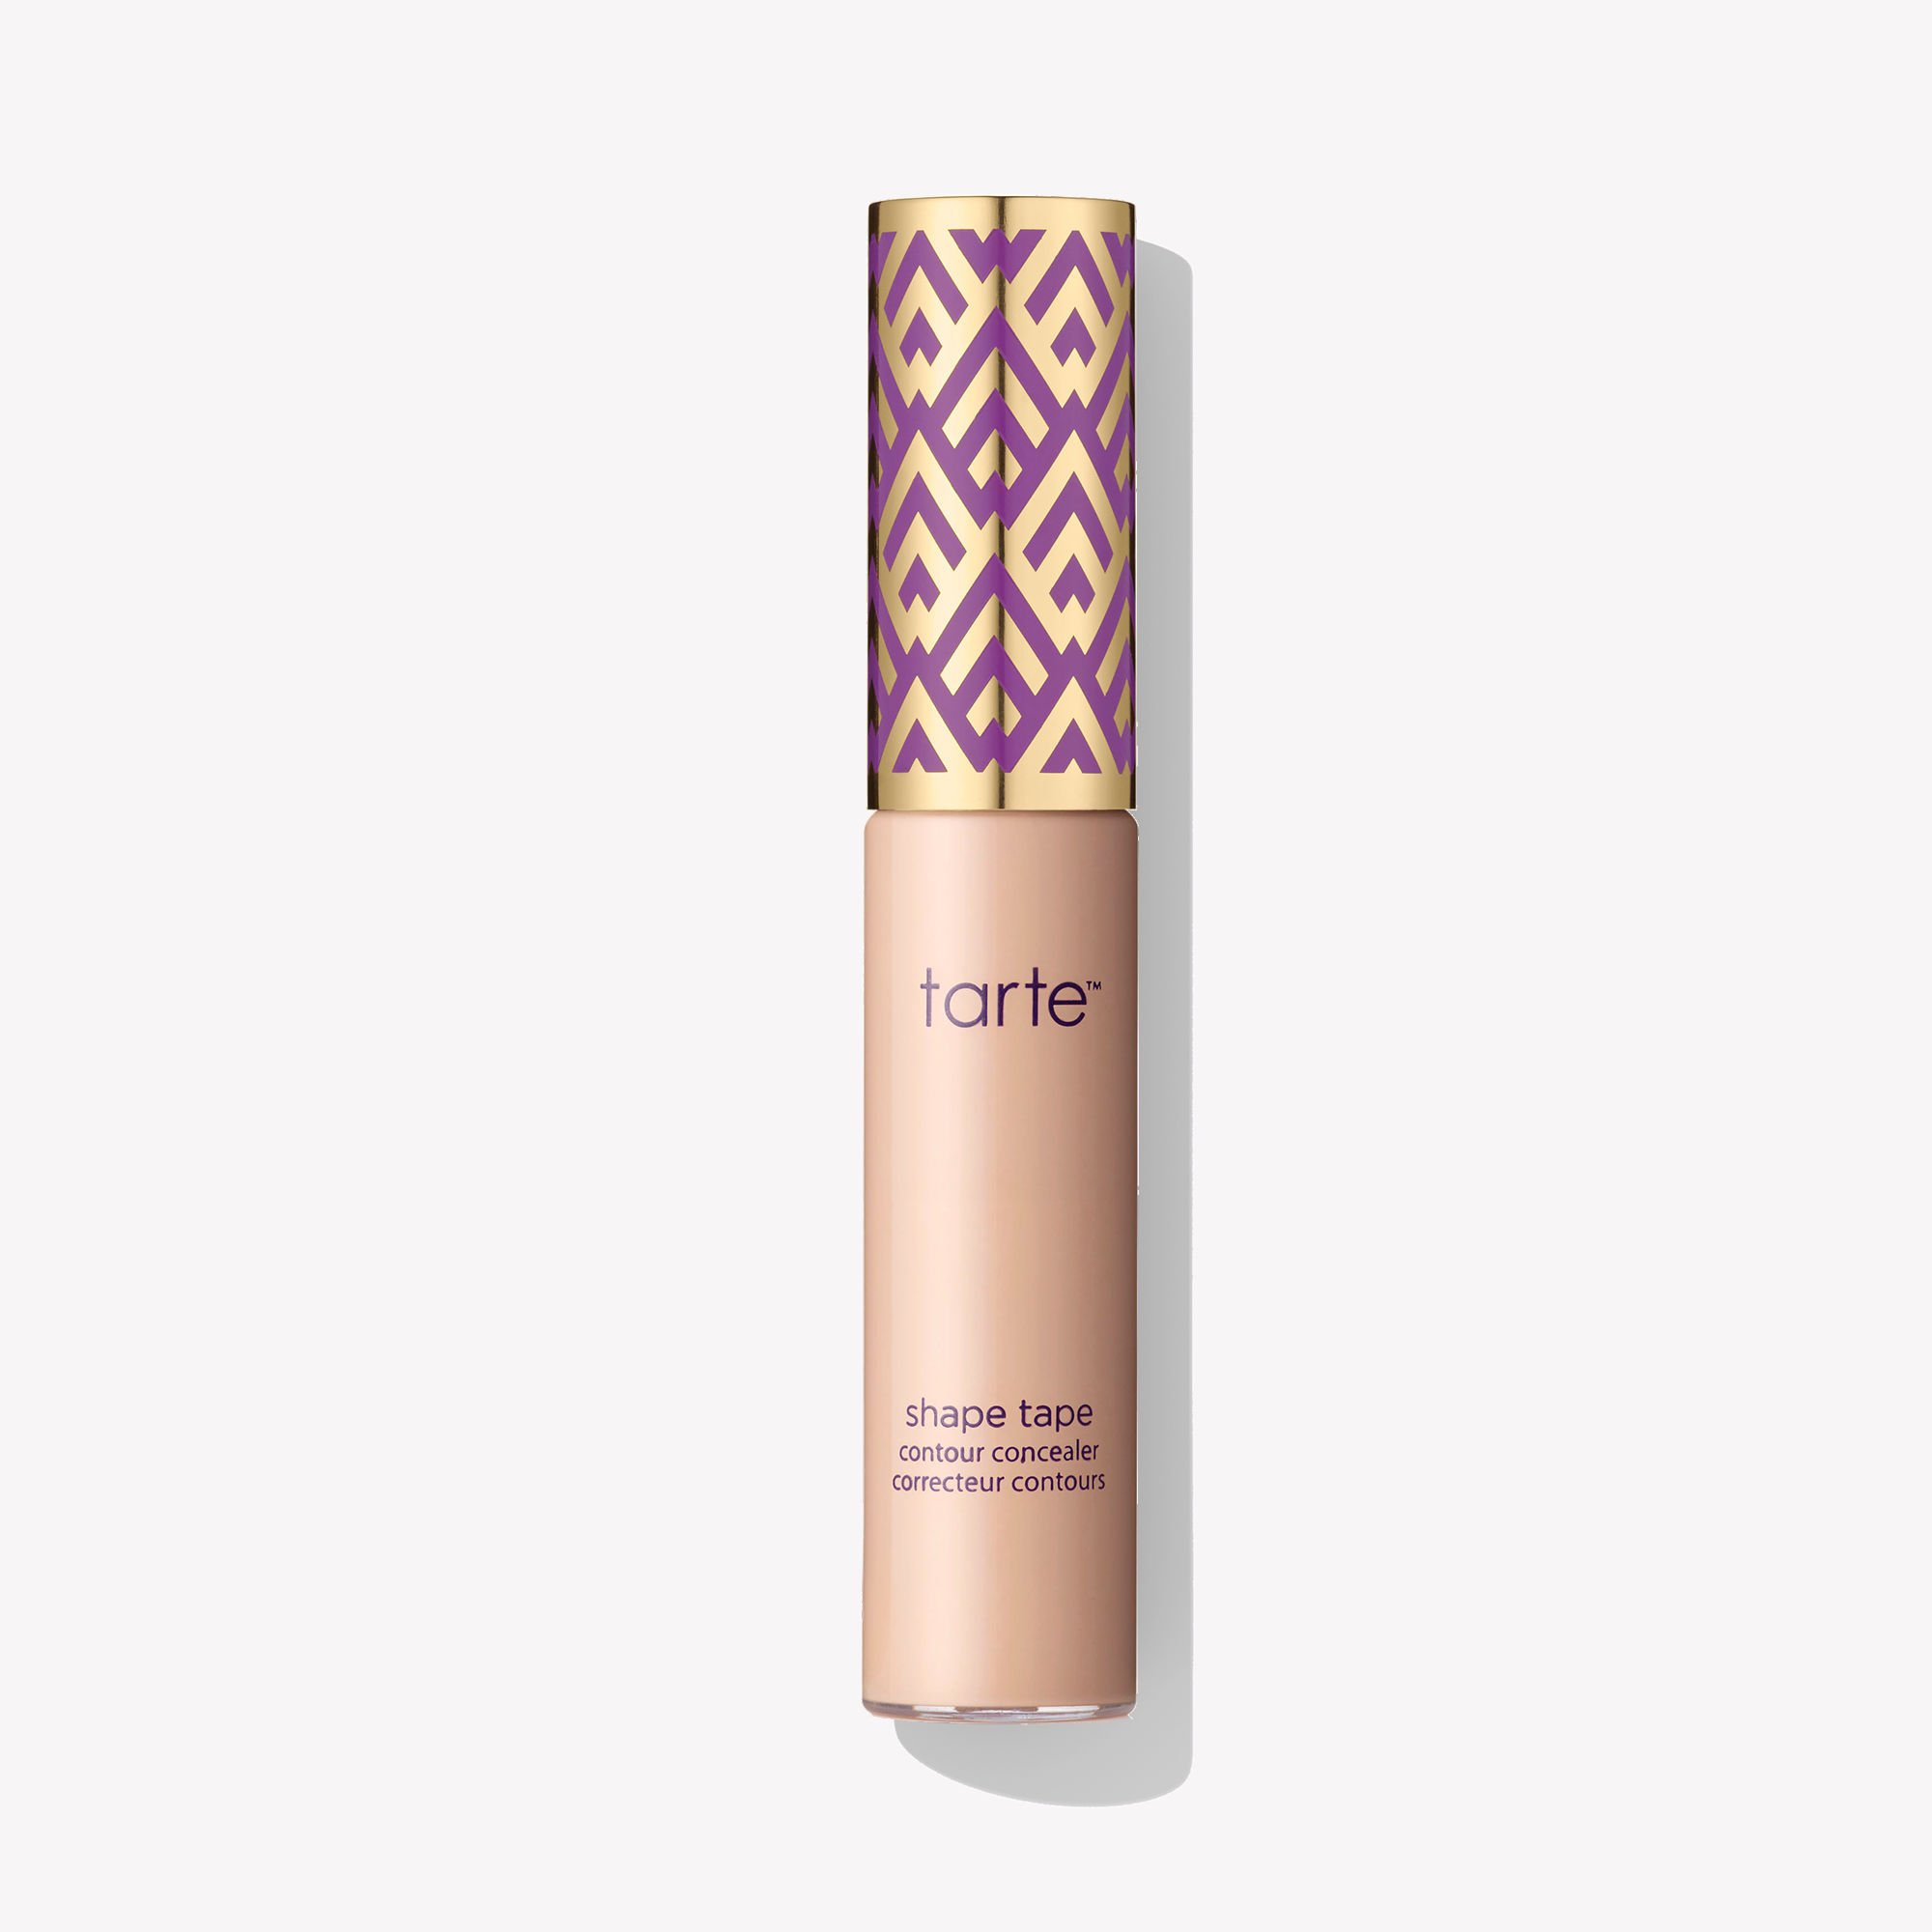 TARTE Shape Tape Contour Concealer Light Neutral - Full Size